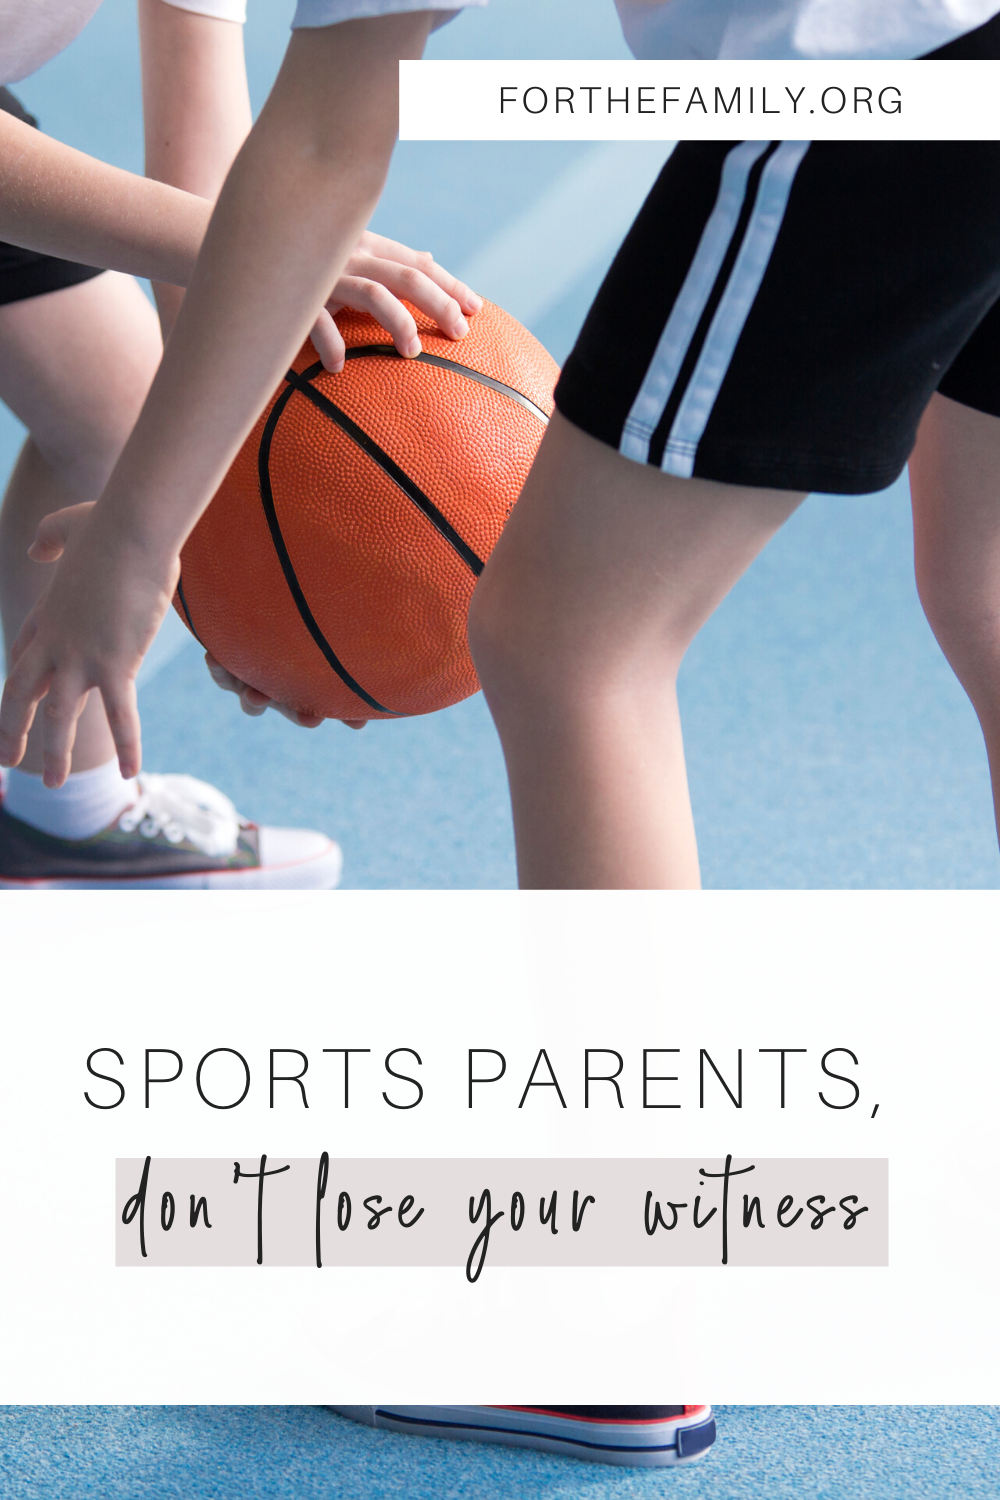 Many of us have children in sports and have seen firsthand the craziness that can ensue when a parent takes the liberty to shout at the ref, another parent or even a child. But what are our words and actions really communicating to our kids and others around us? Here are some checkpoints for maintaining a Christ-like character in the midst of competitive sports....